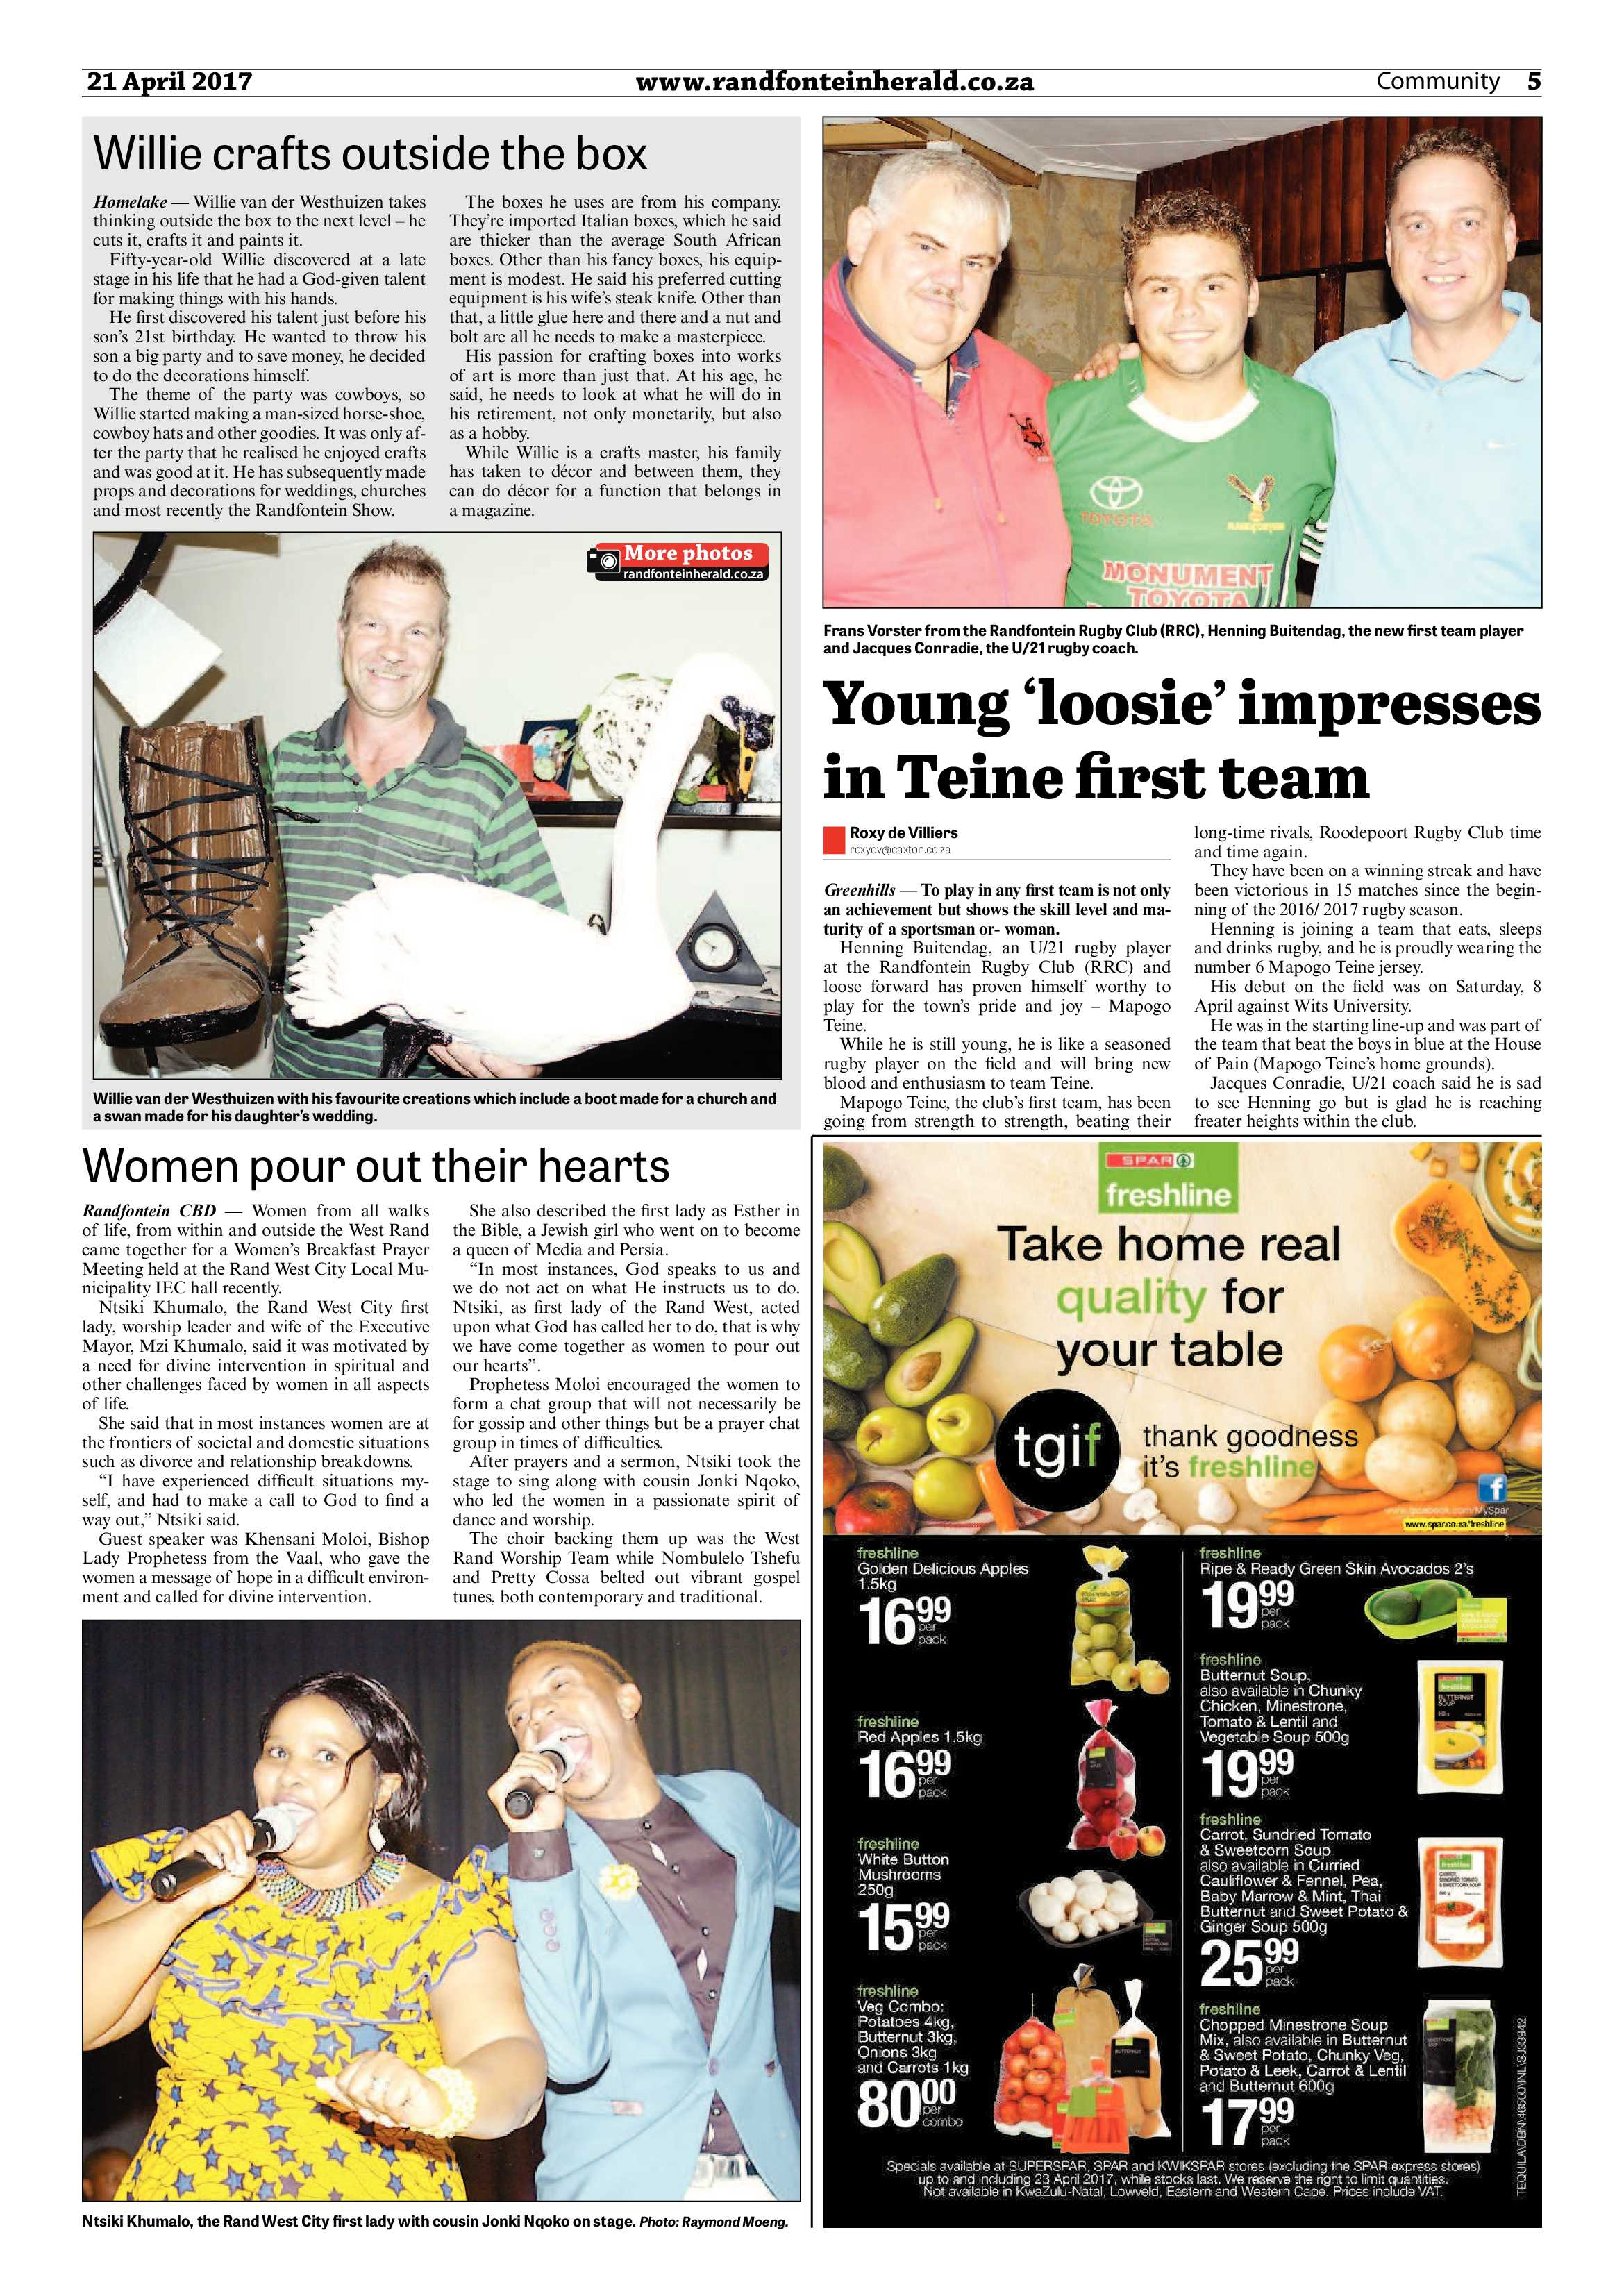 randfontein-herald-21-april-2017-epapers-page-5